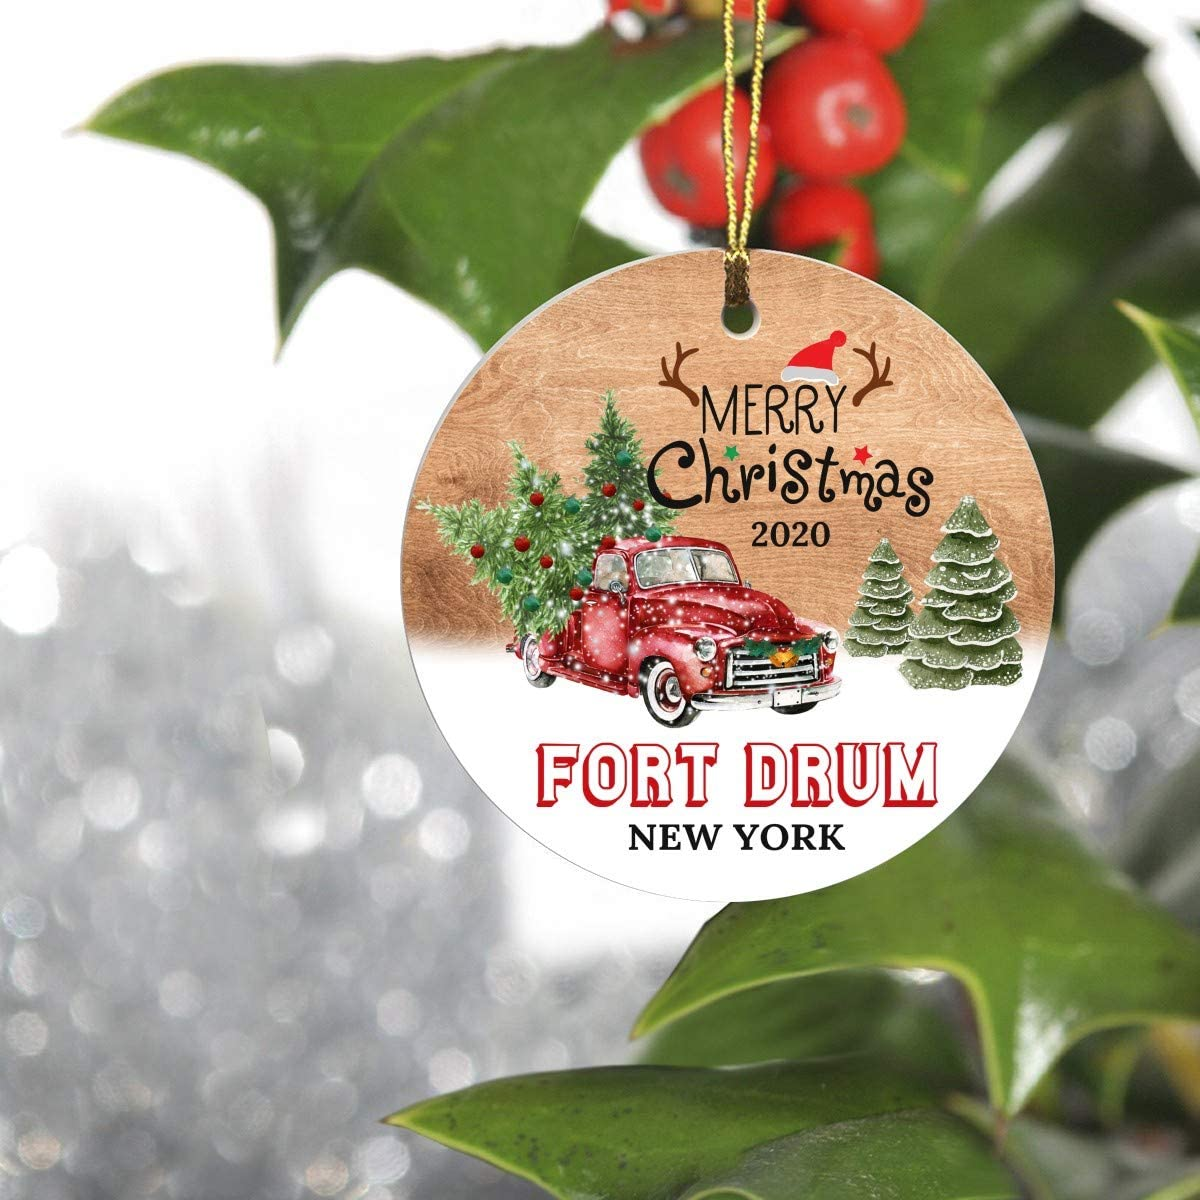 """Merry Christmas Tree Decorations Ornaments 2020 - Ornament Hometown Fort Drum New York NY State - Keepsake Gift Ideas Ornament 3"""" For Family, Friend And Housewarming"""